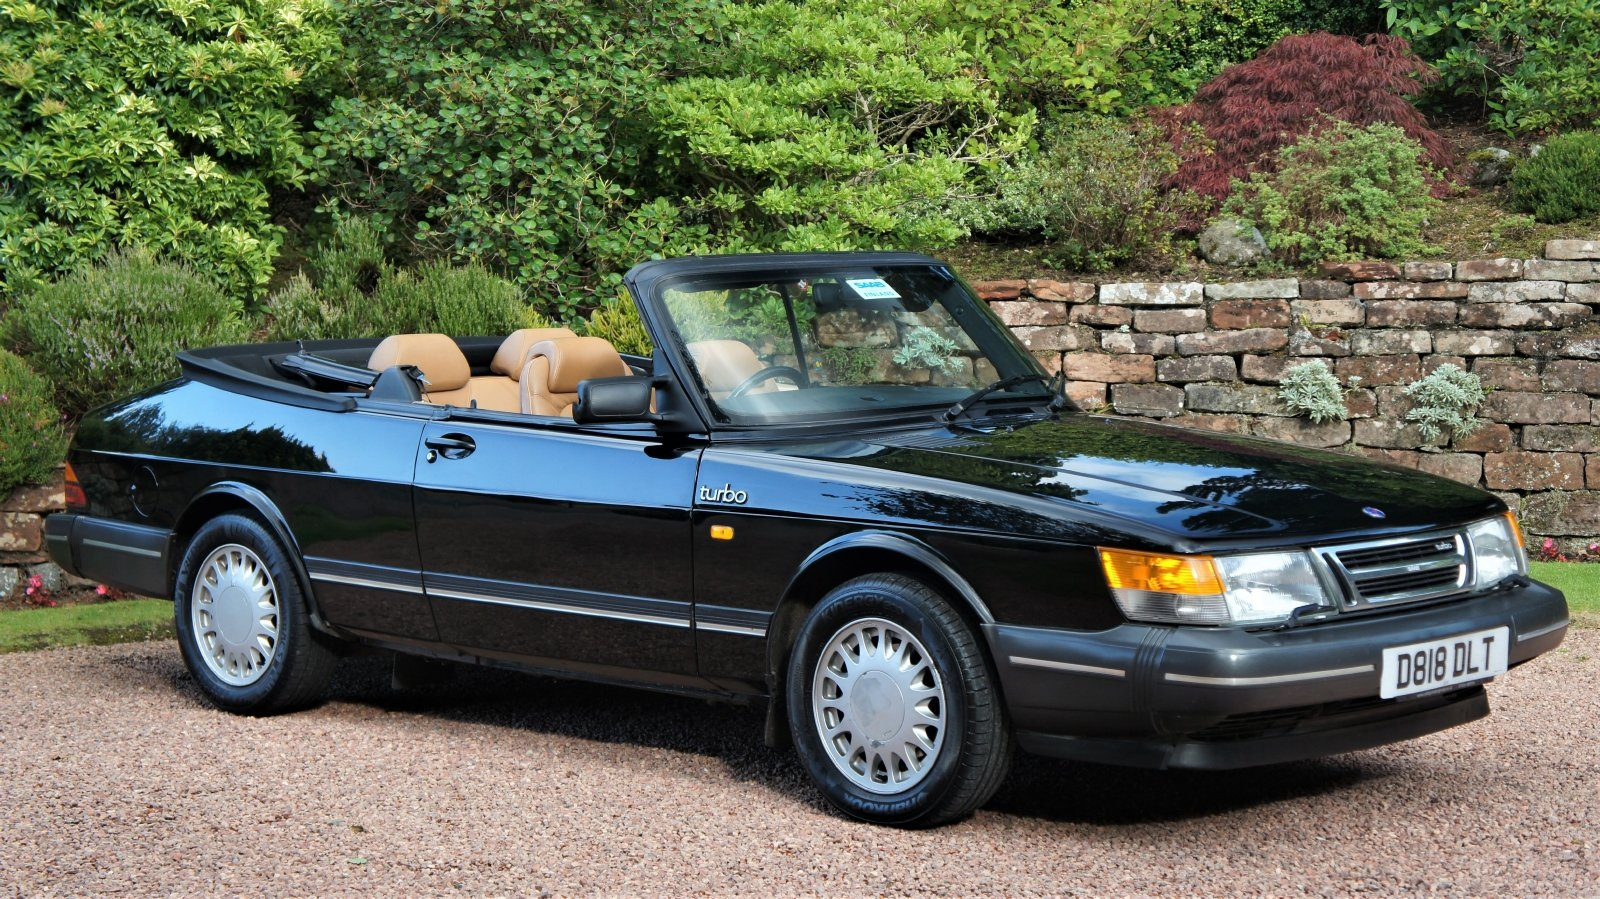 1987 SAAB 900 16 VALVE TURBO CONVERTIBLE - 74000 MILES For Sale (picture 1 of 6)